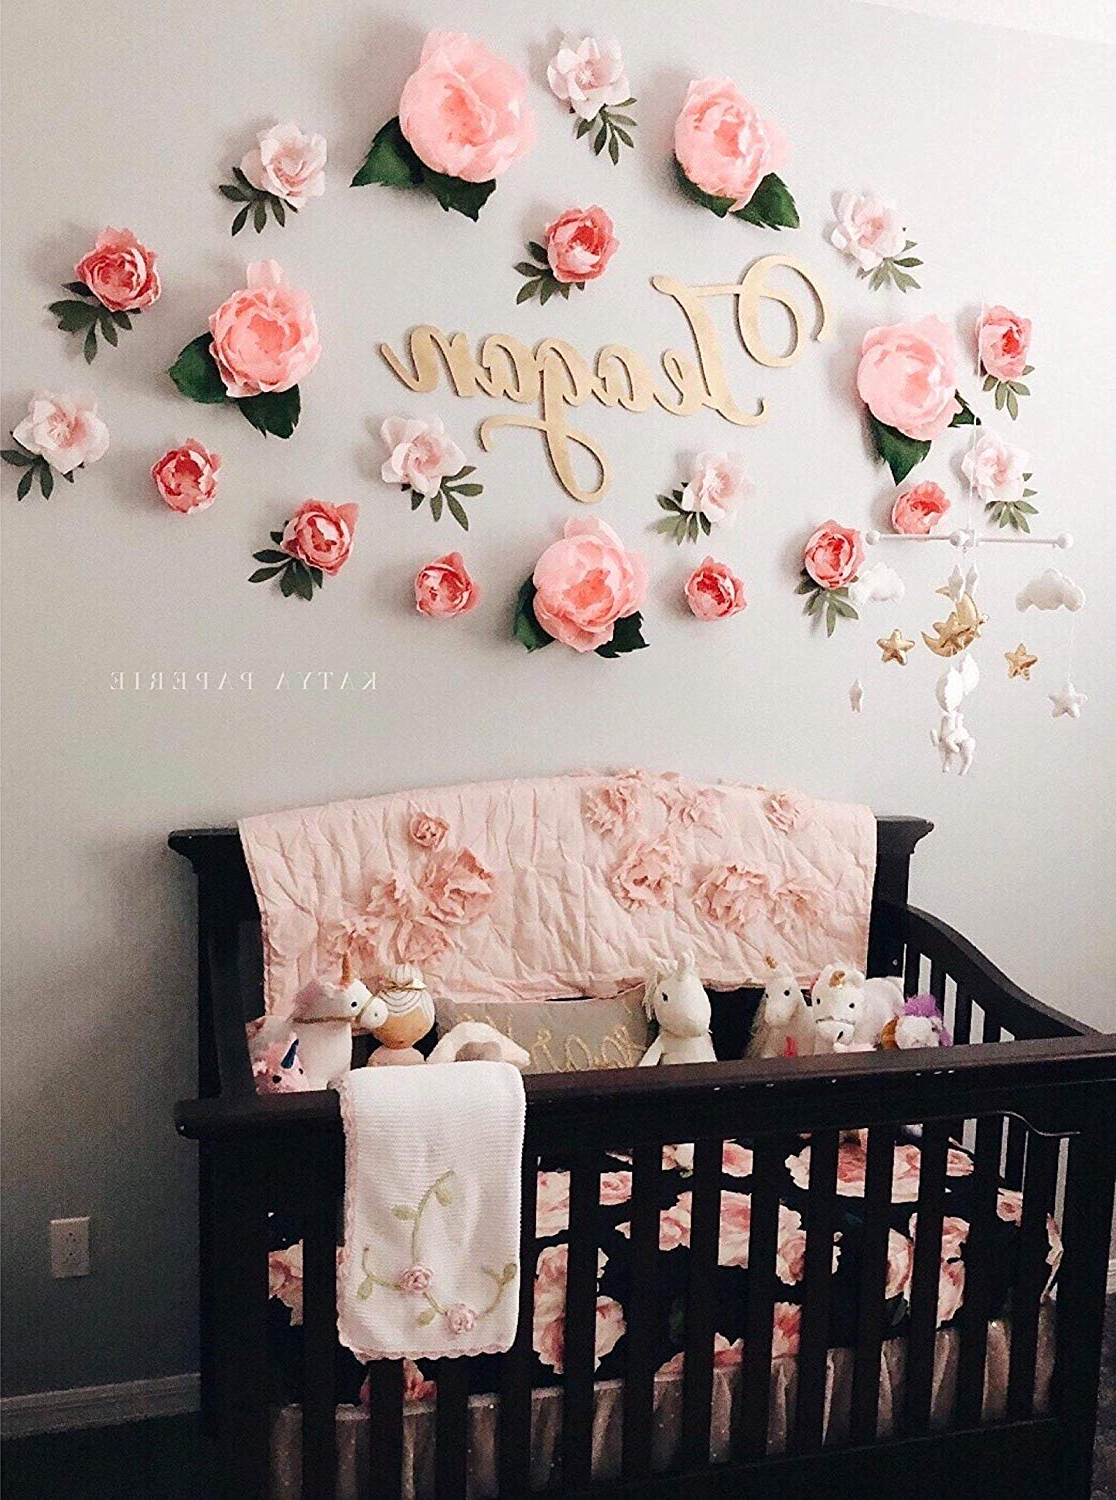 Amazon: Dreamy Paper Flower Wall Display (View 3 of 20)